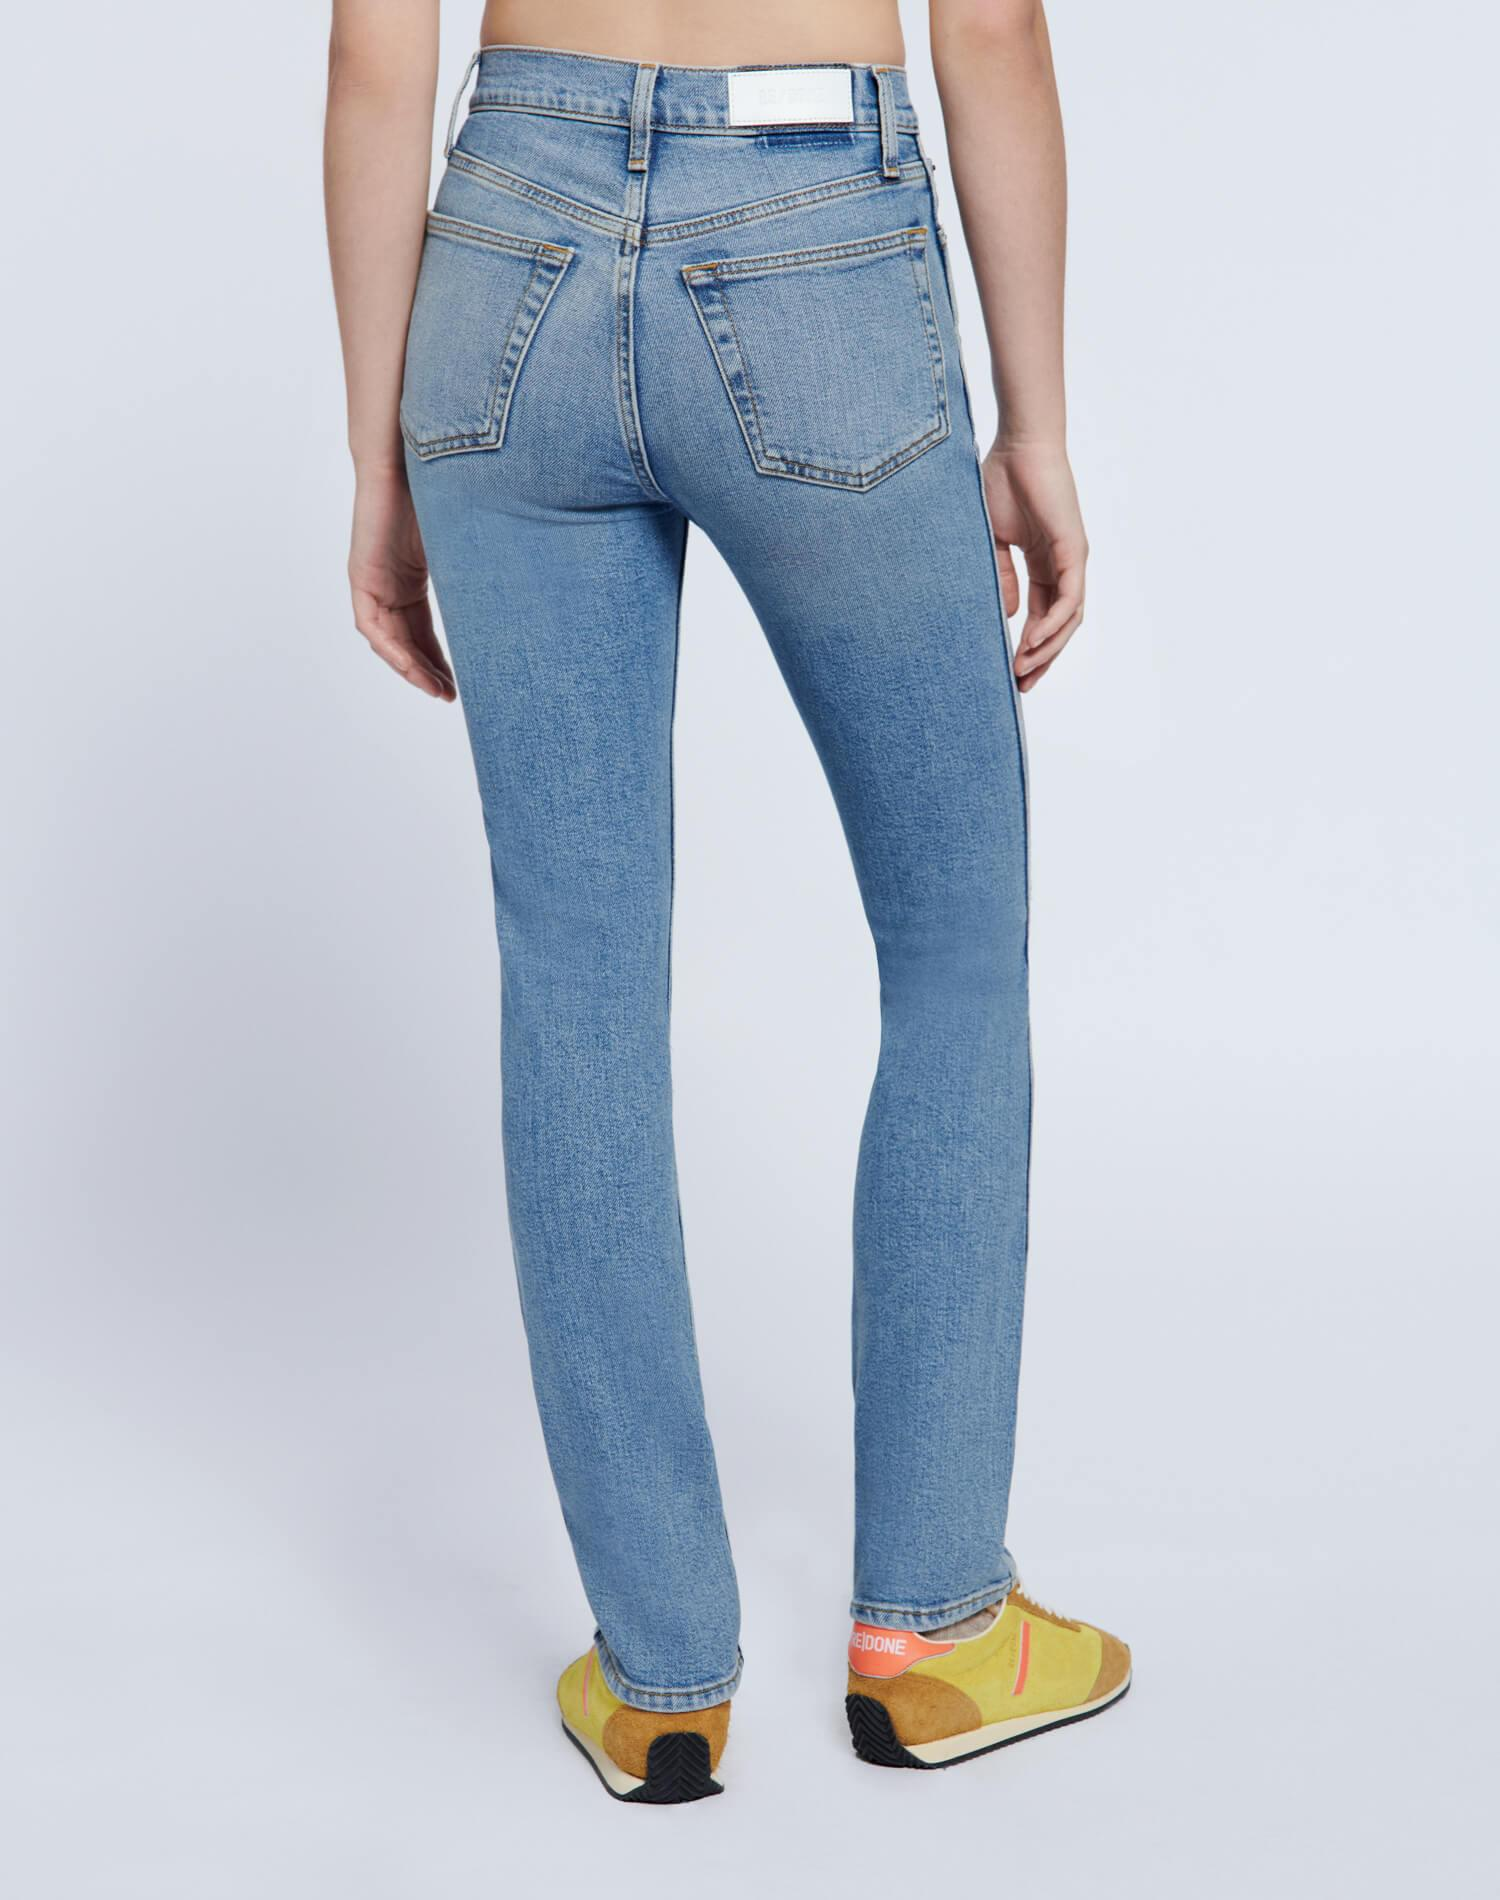 80s Comfort Stretch Slim Straight - Brisk Blue with Rips 3